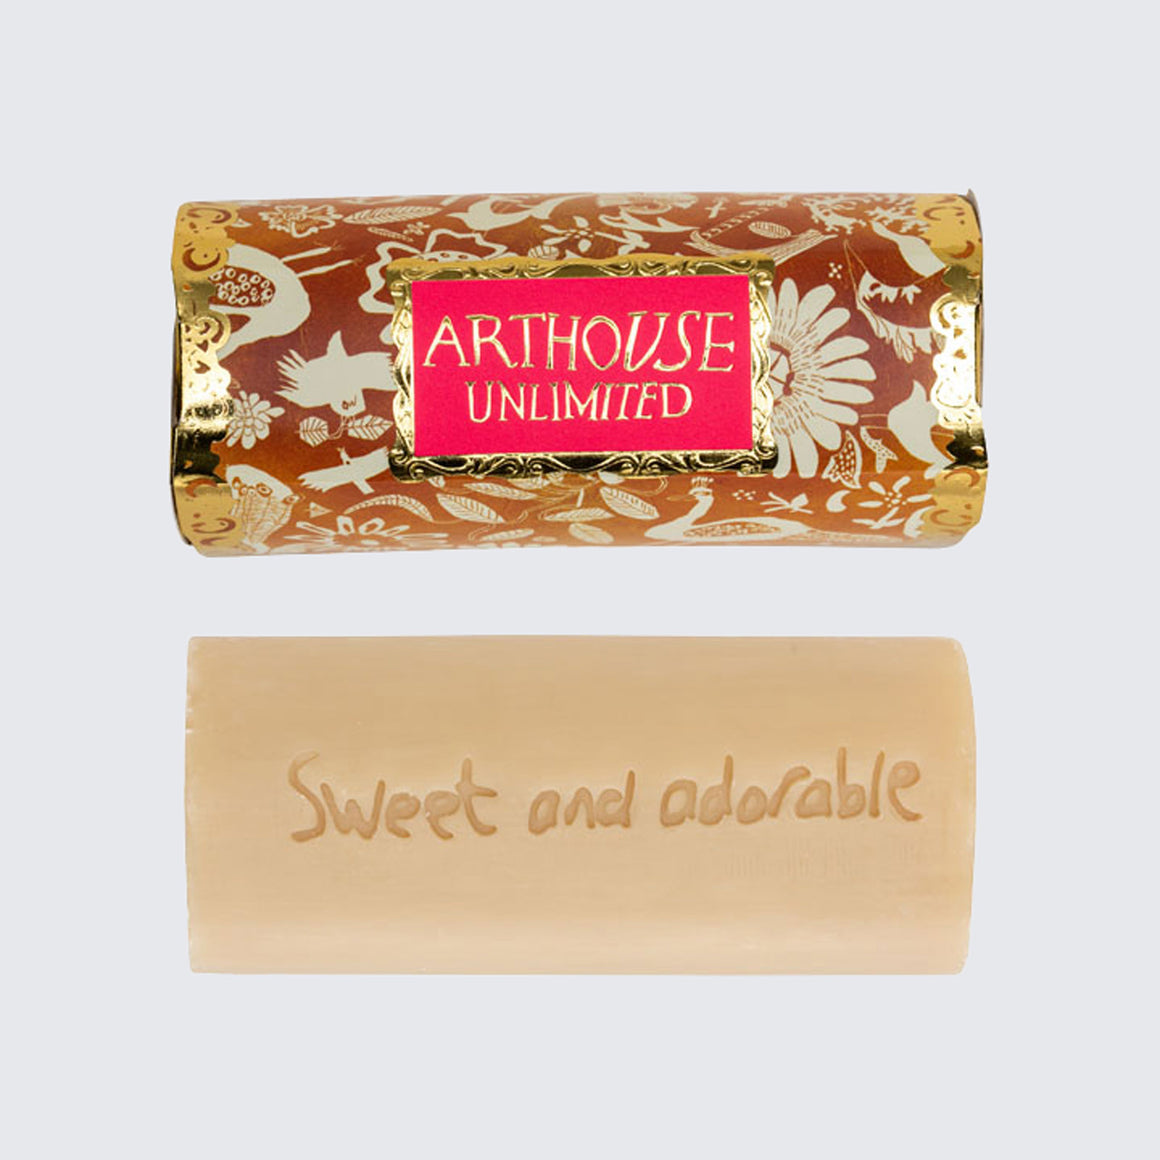 ARTHOUSE Unlimited Tubular Organic Soap Serendipity 'Hazy, Hot Orchard'